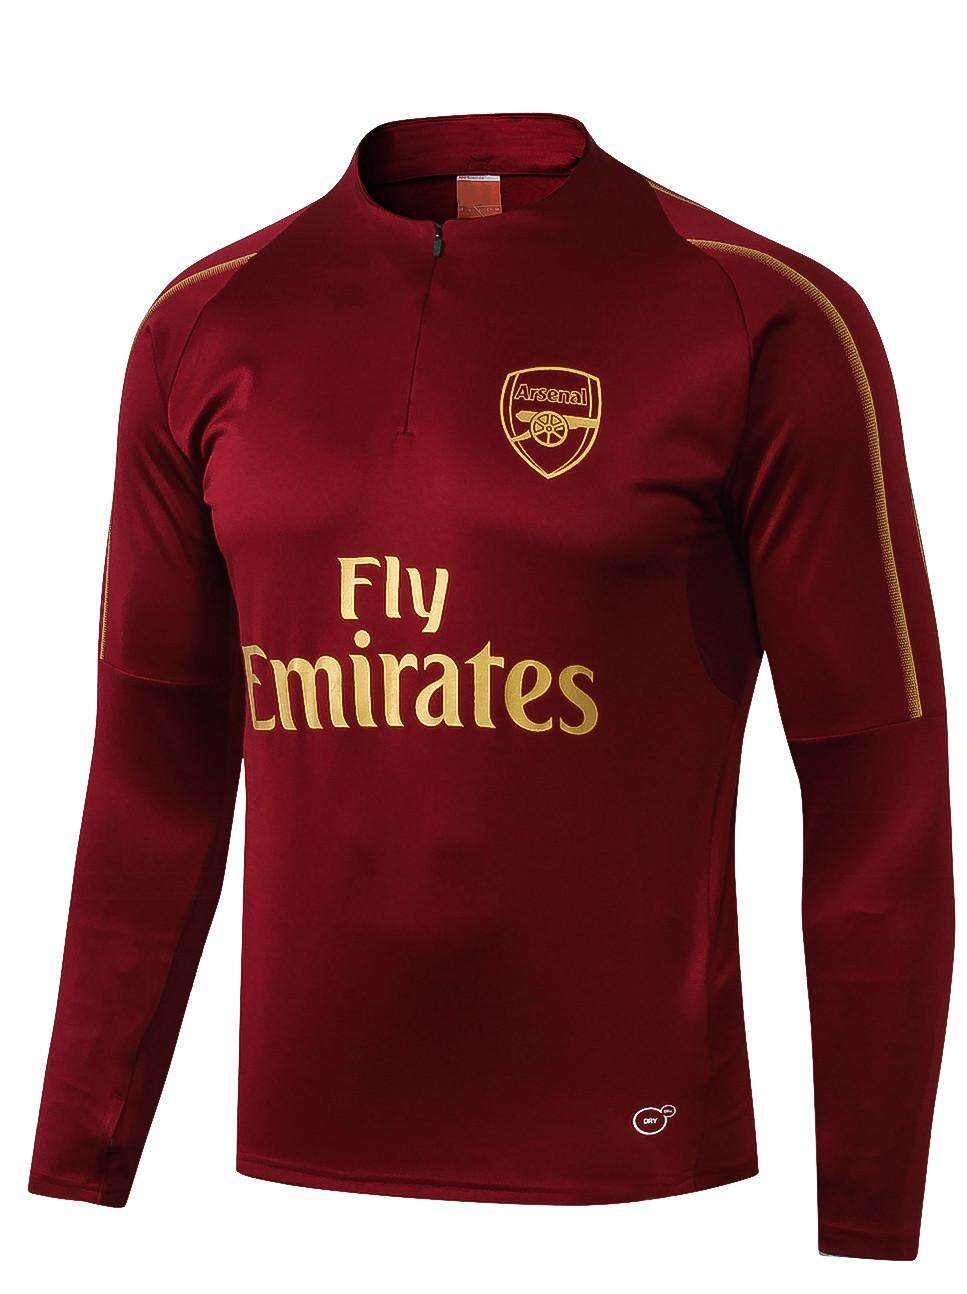 8ca17ae45 Soccer Jerseys for sale - Mens Football Jerseys Online Deals ...